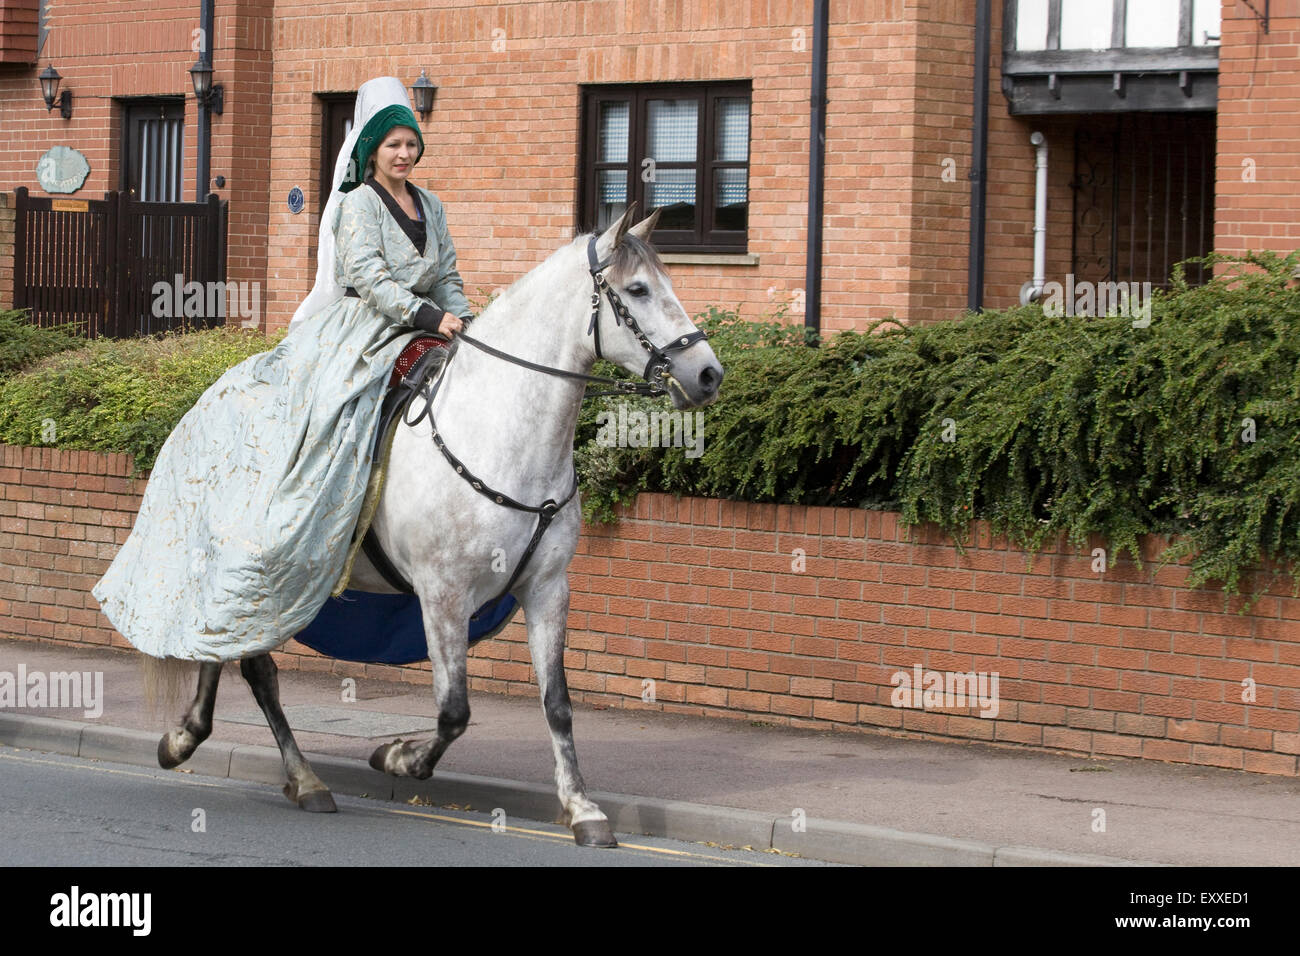 Horse And Rider In Medieval Costume Riding Though Tewkesbury Stock Photo Alamy